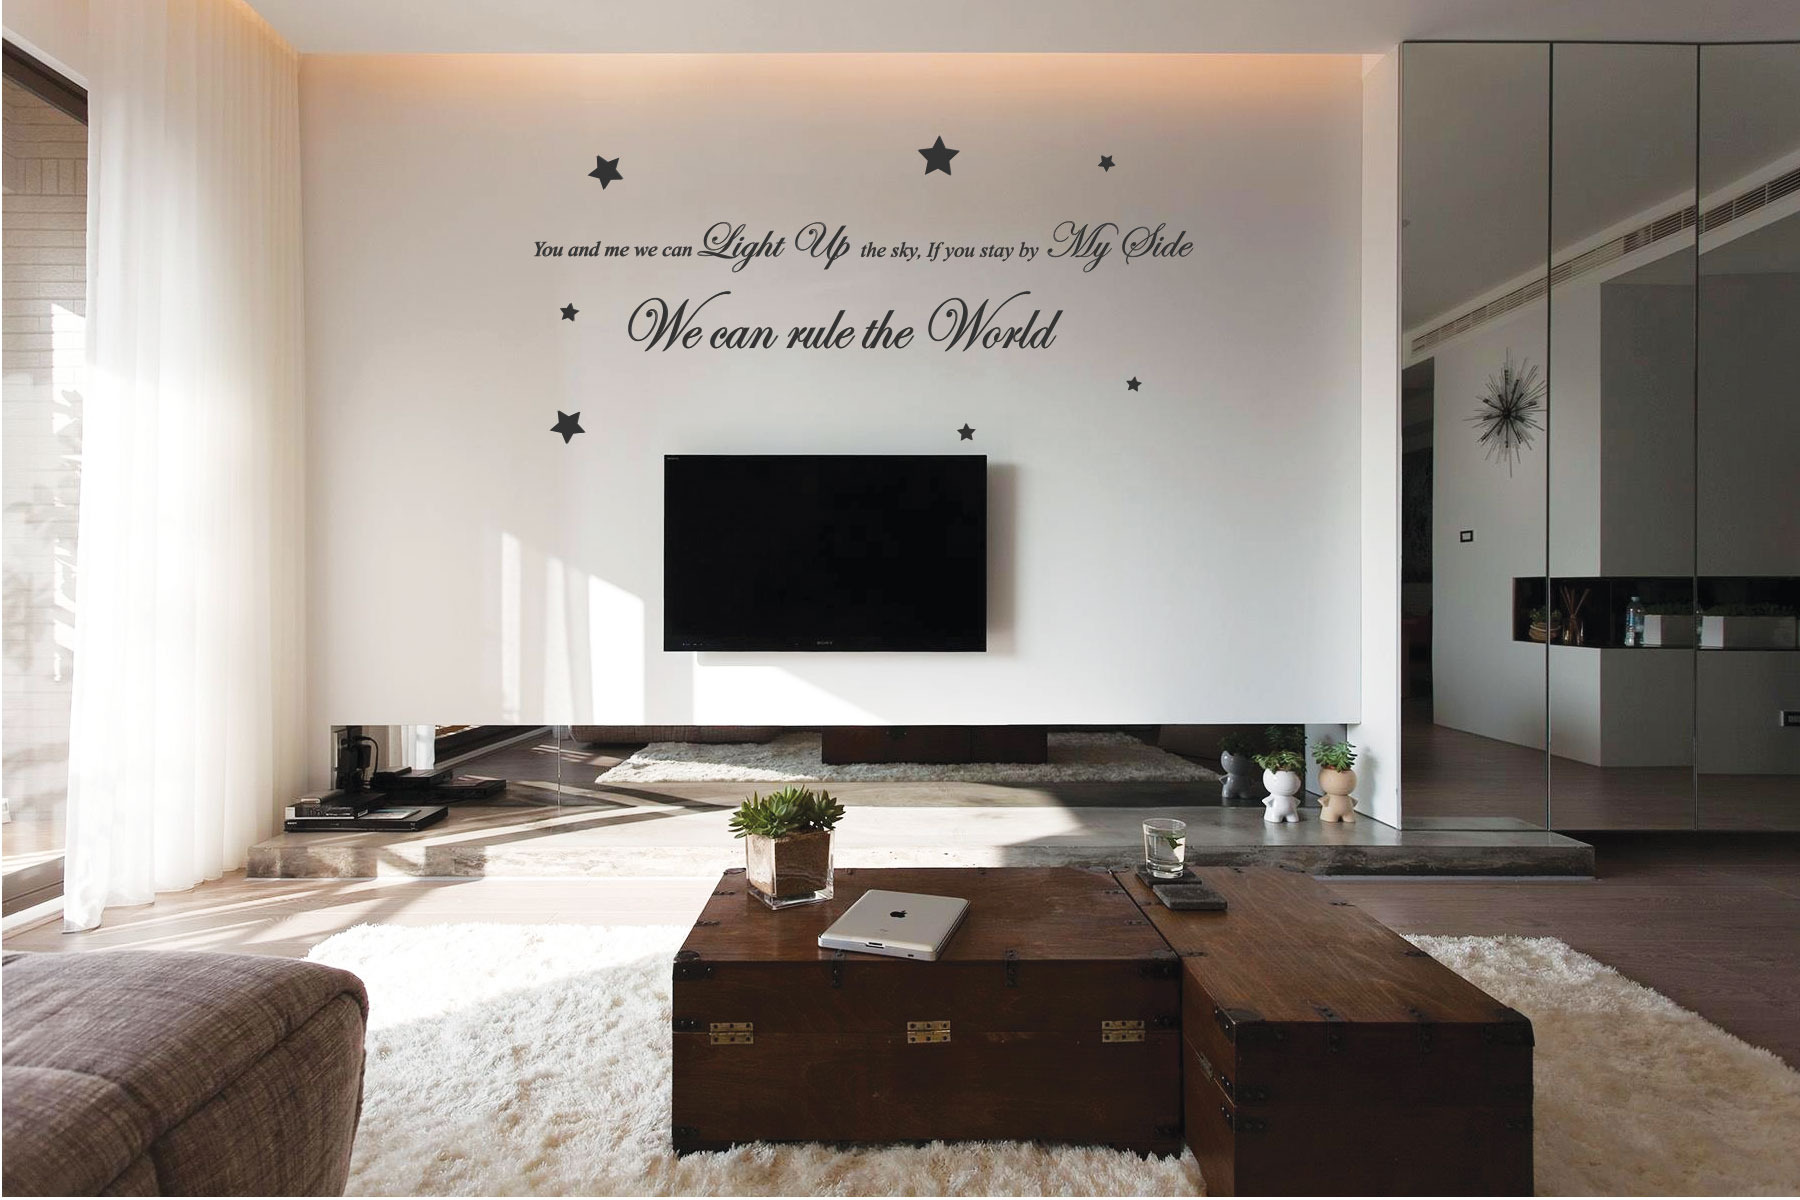 Take That Rule The World Song Lyrics Wall Quote Stickers Wall ...